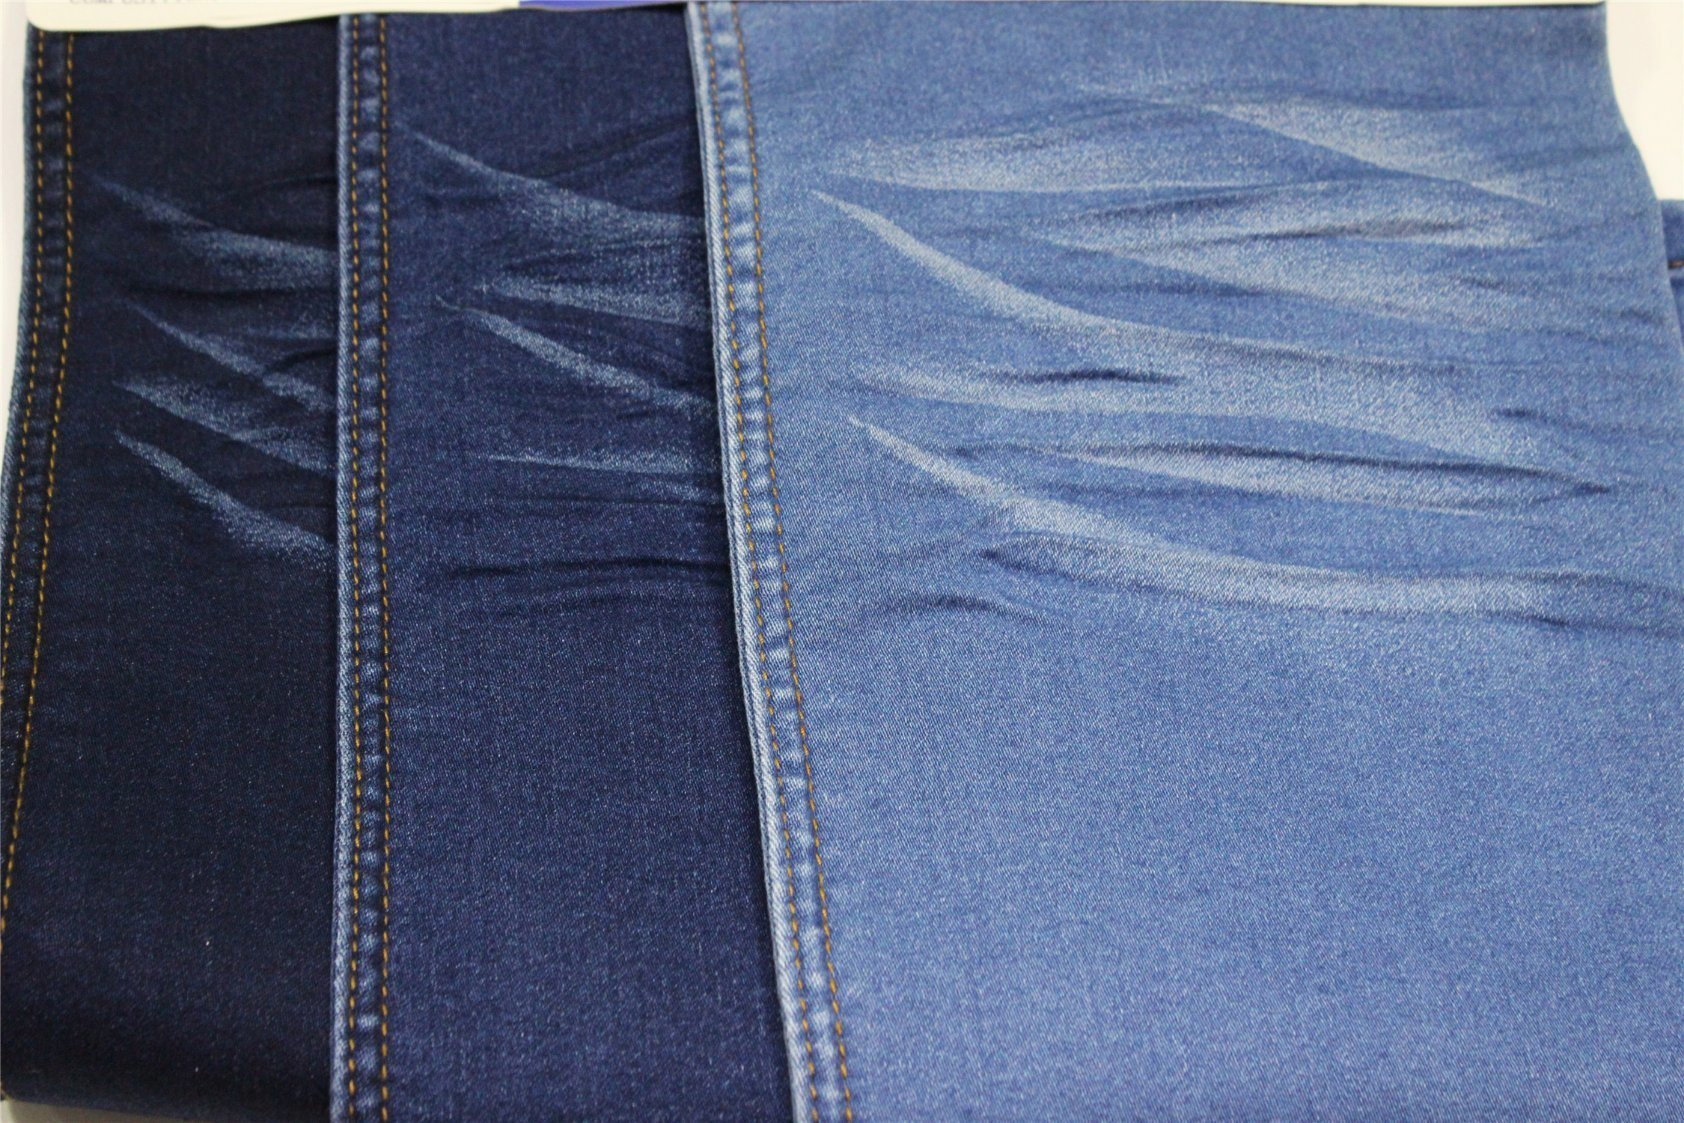 Cotton Polyester Spandex Denim With Rayon